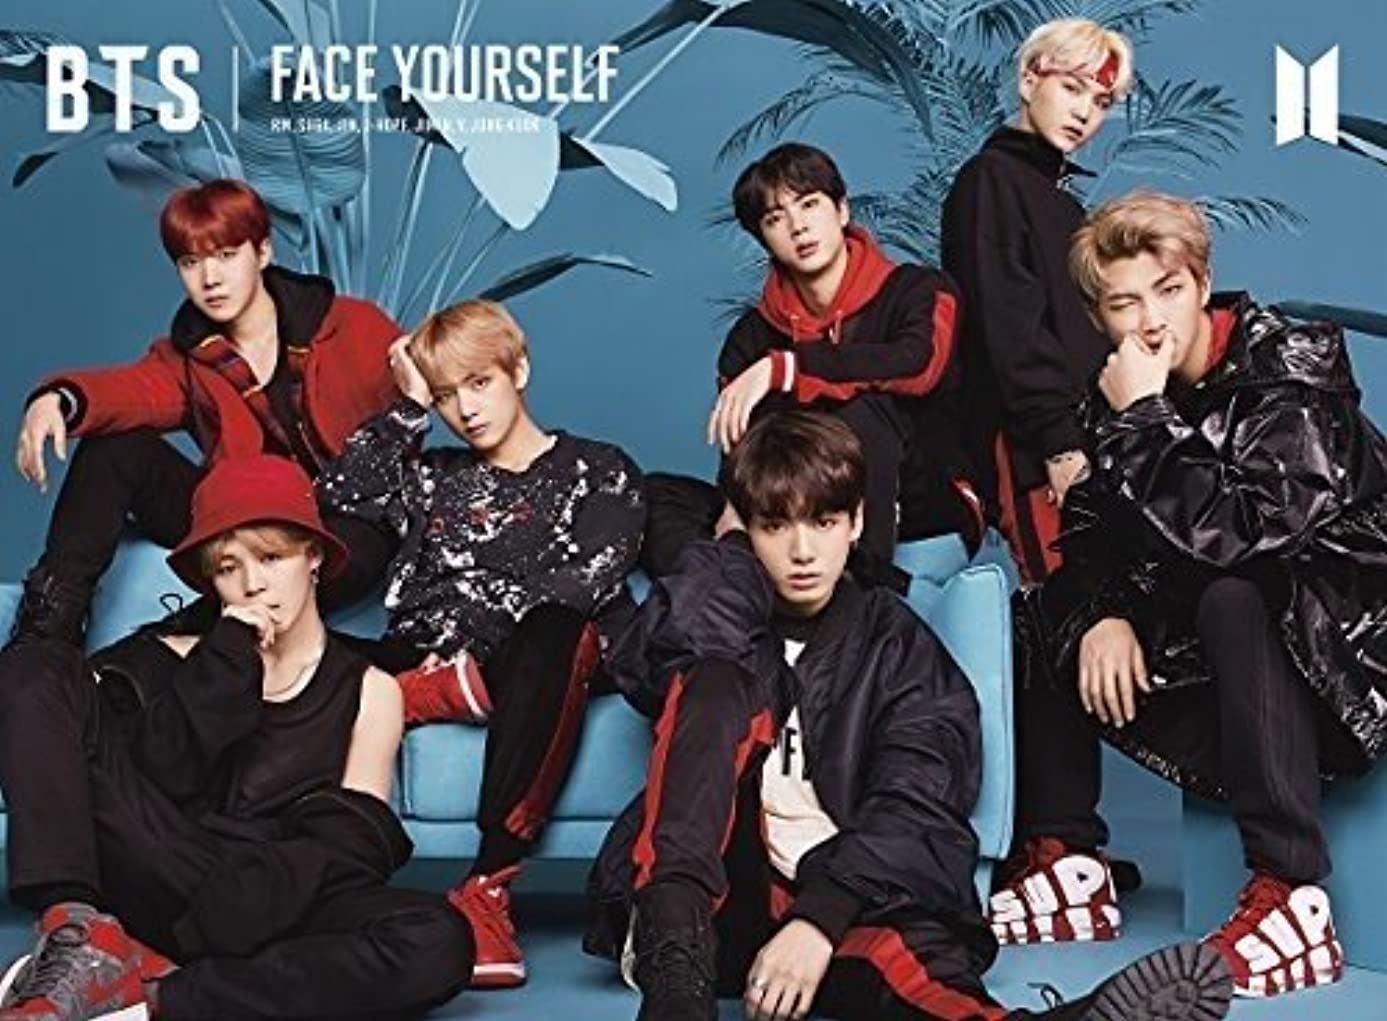 Face Yourself: Limited A Version